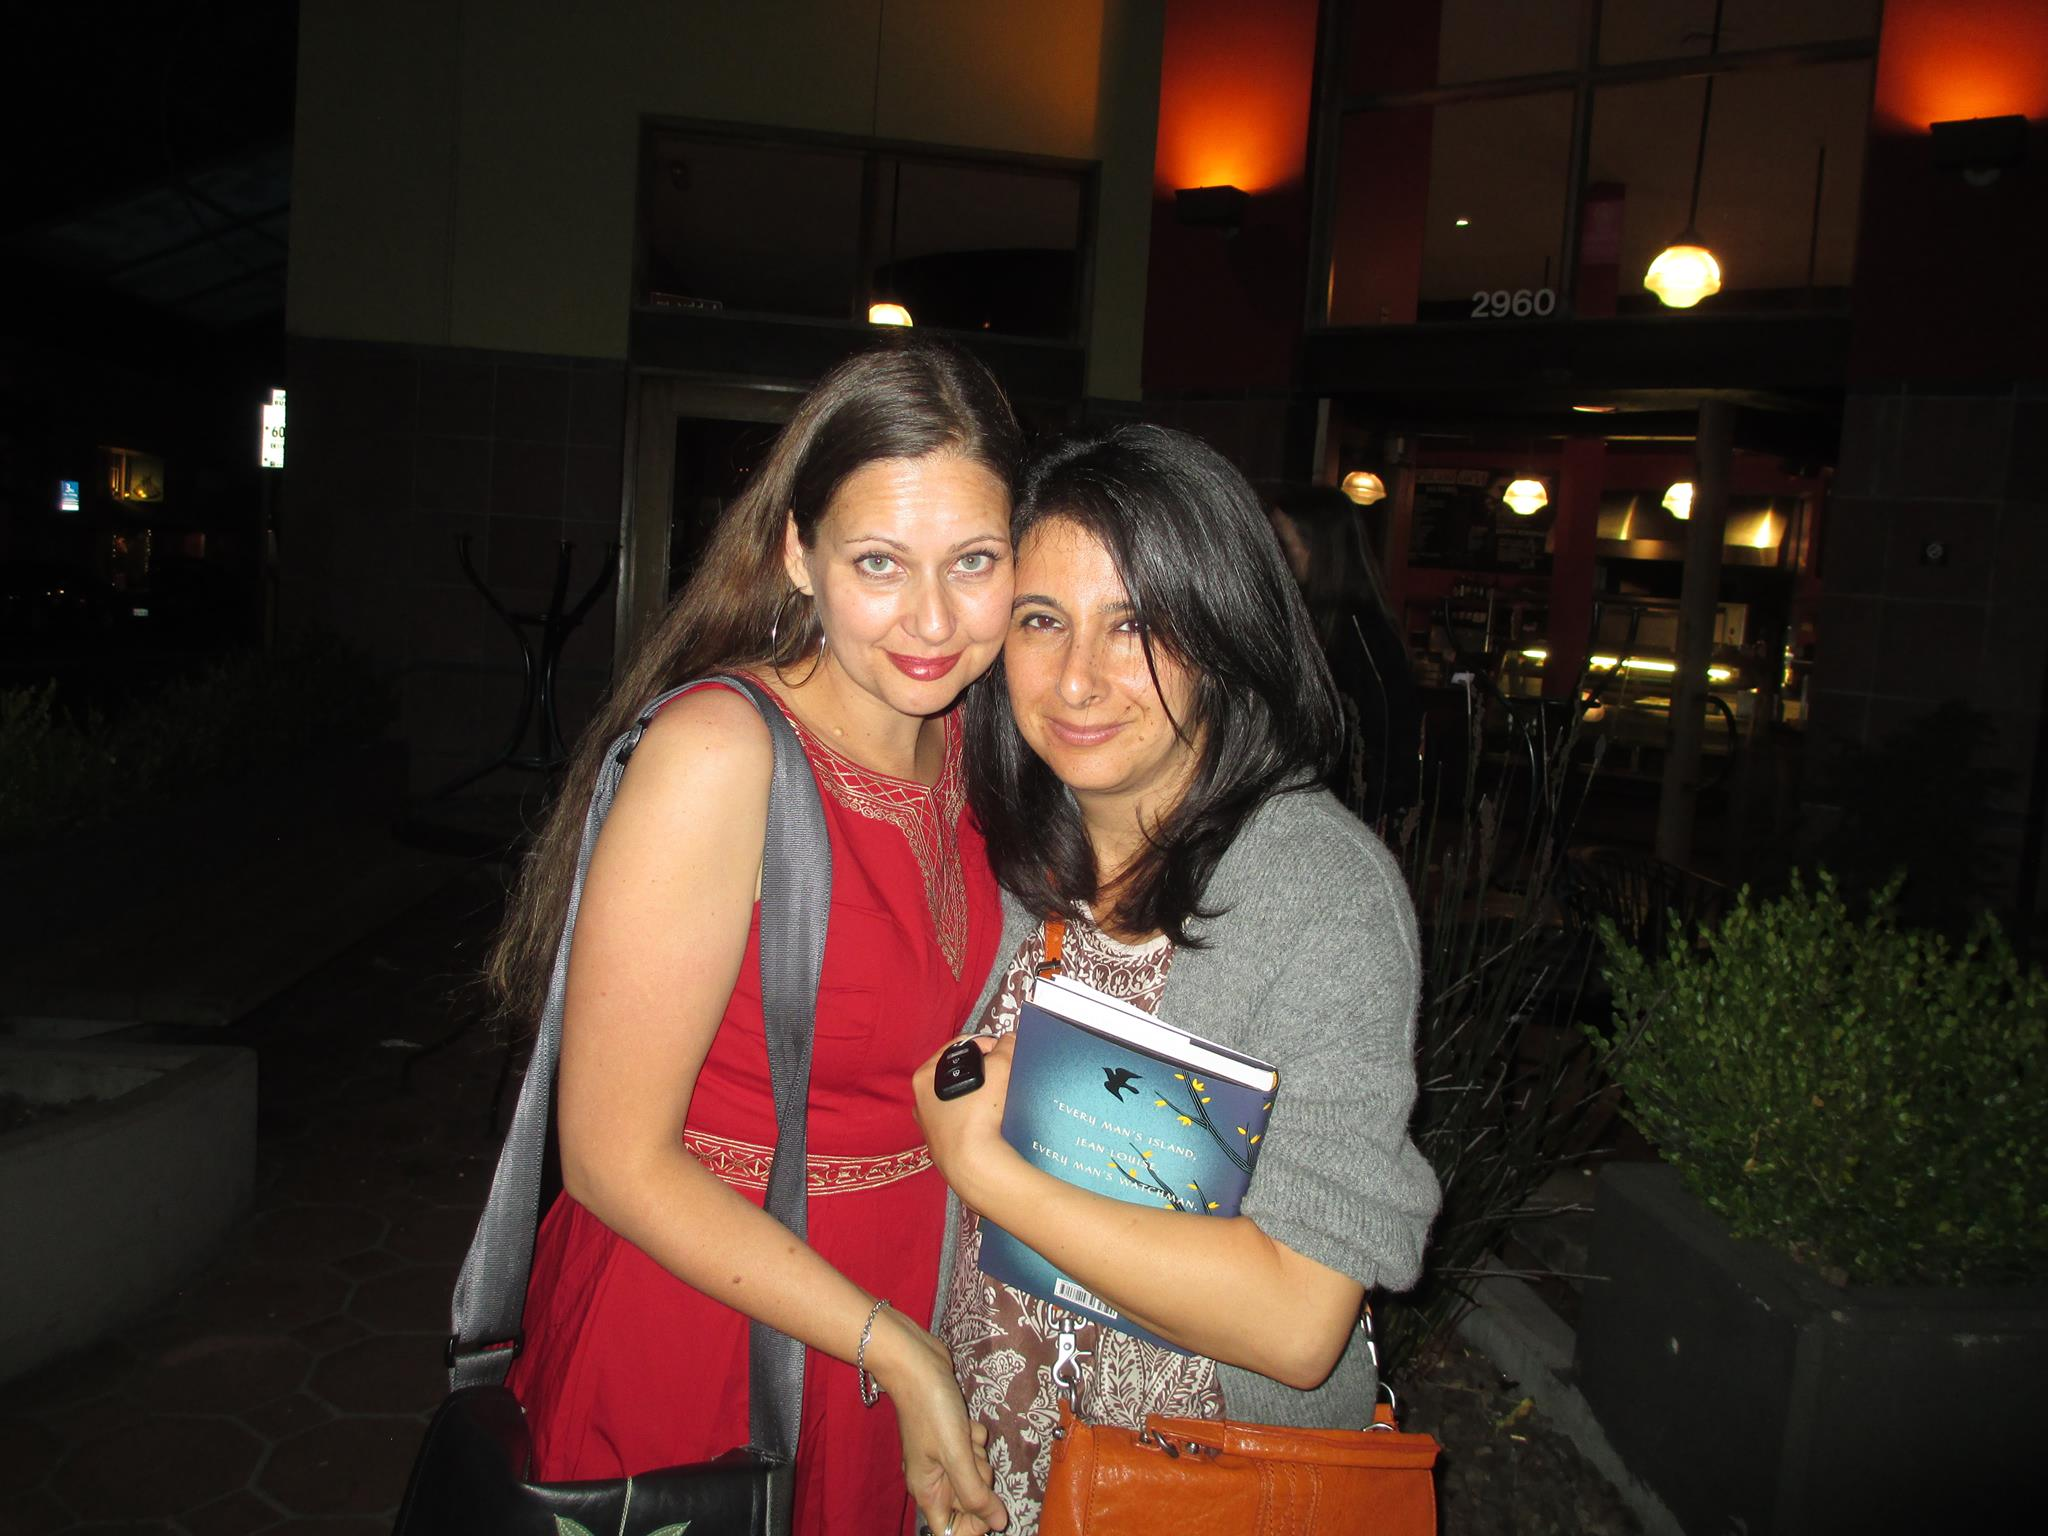 With Parnaz Foroutan, author of THE GIRL FROM THE GARDEN, after reading  together at Mrs. Dalloways in Berkeley.